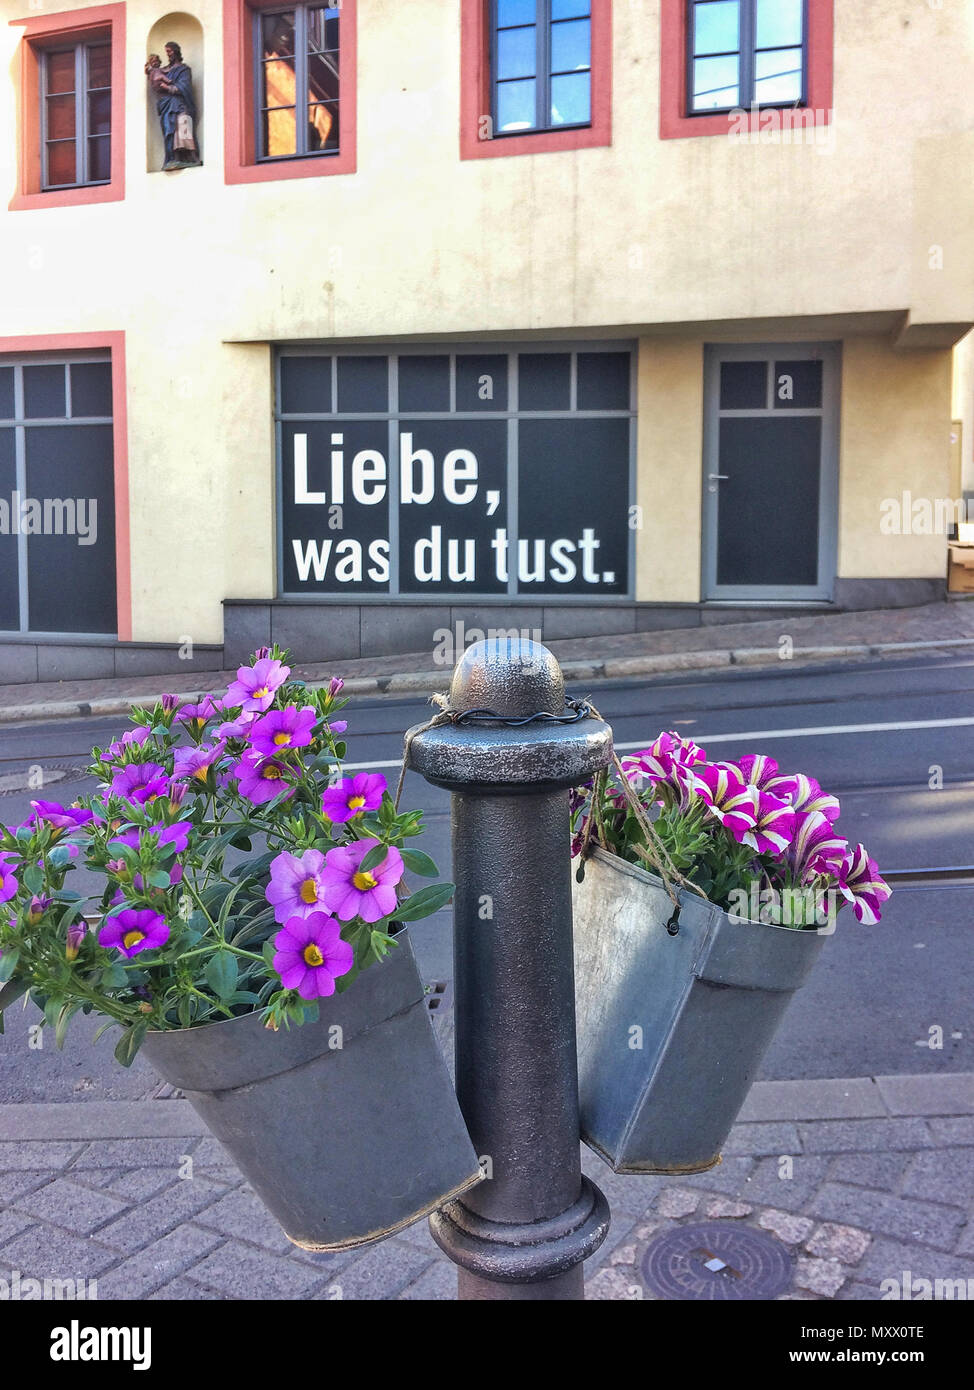 Mainz, Germany – May 15, 2017: Liebe was Du tust (love what you do) written on a house with flowers in the foreground - Stock Image